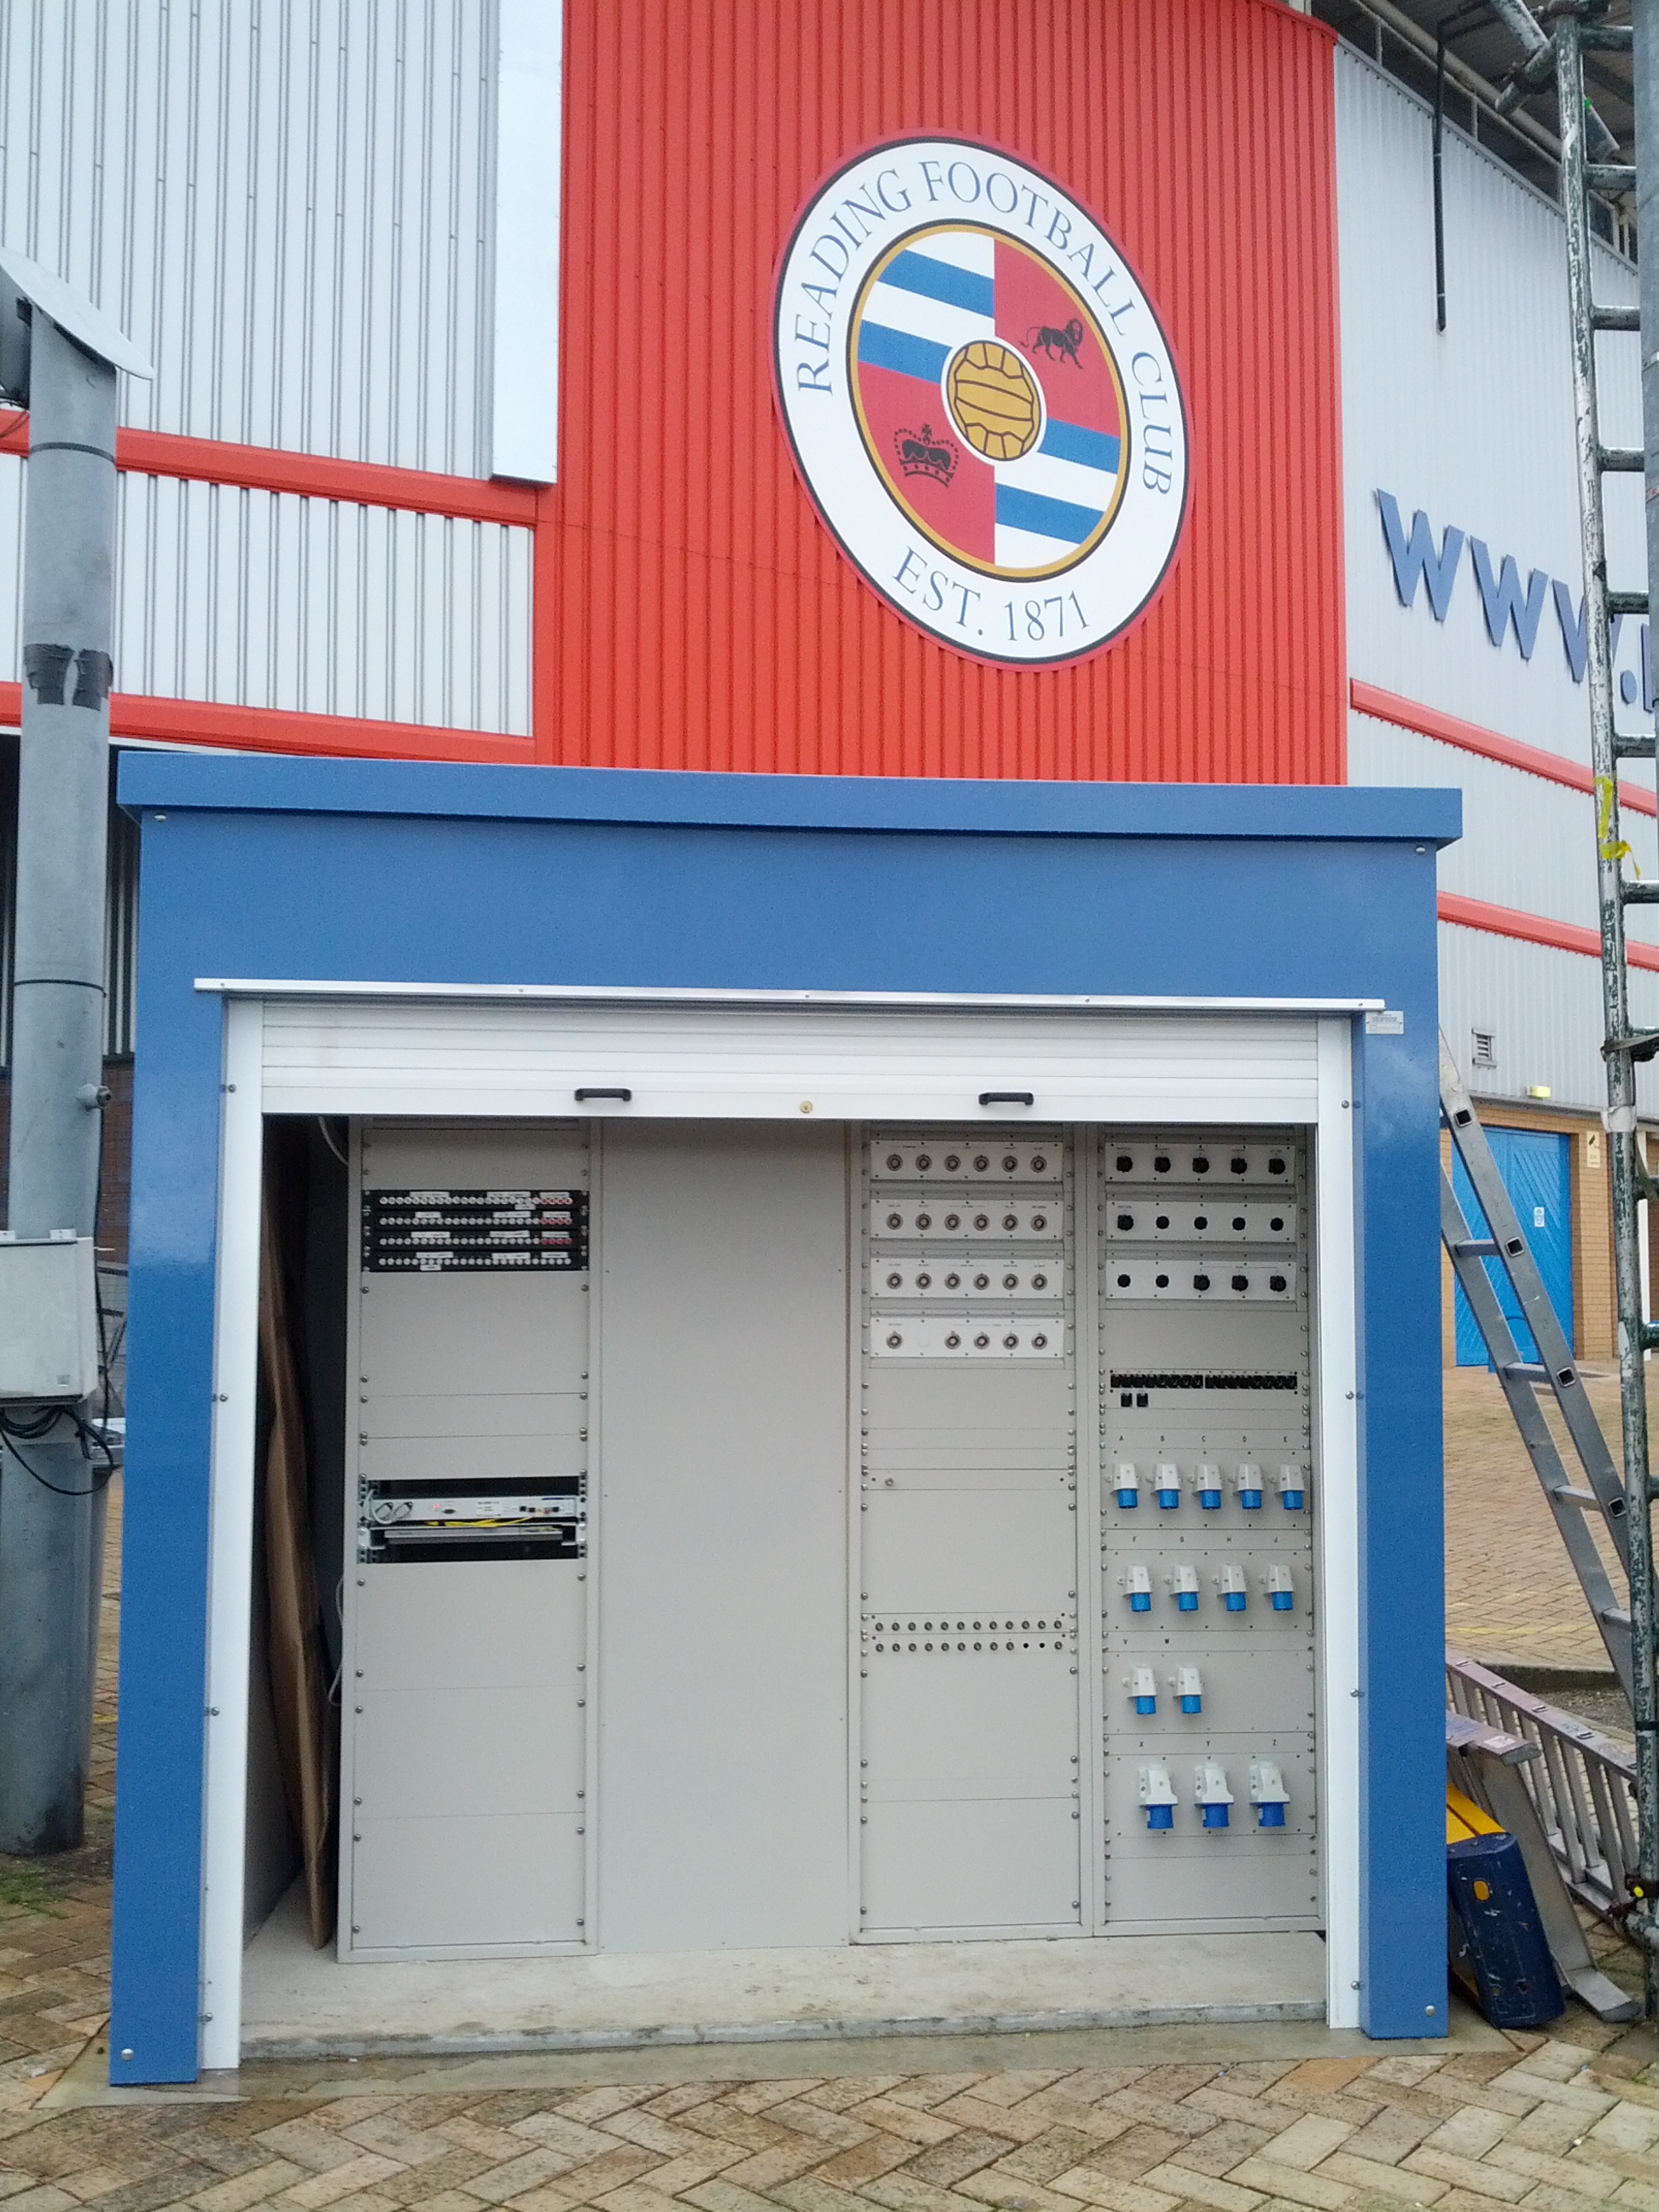 GRP Kiosk at The Madjeski Stadium Reading